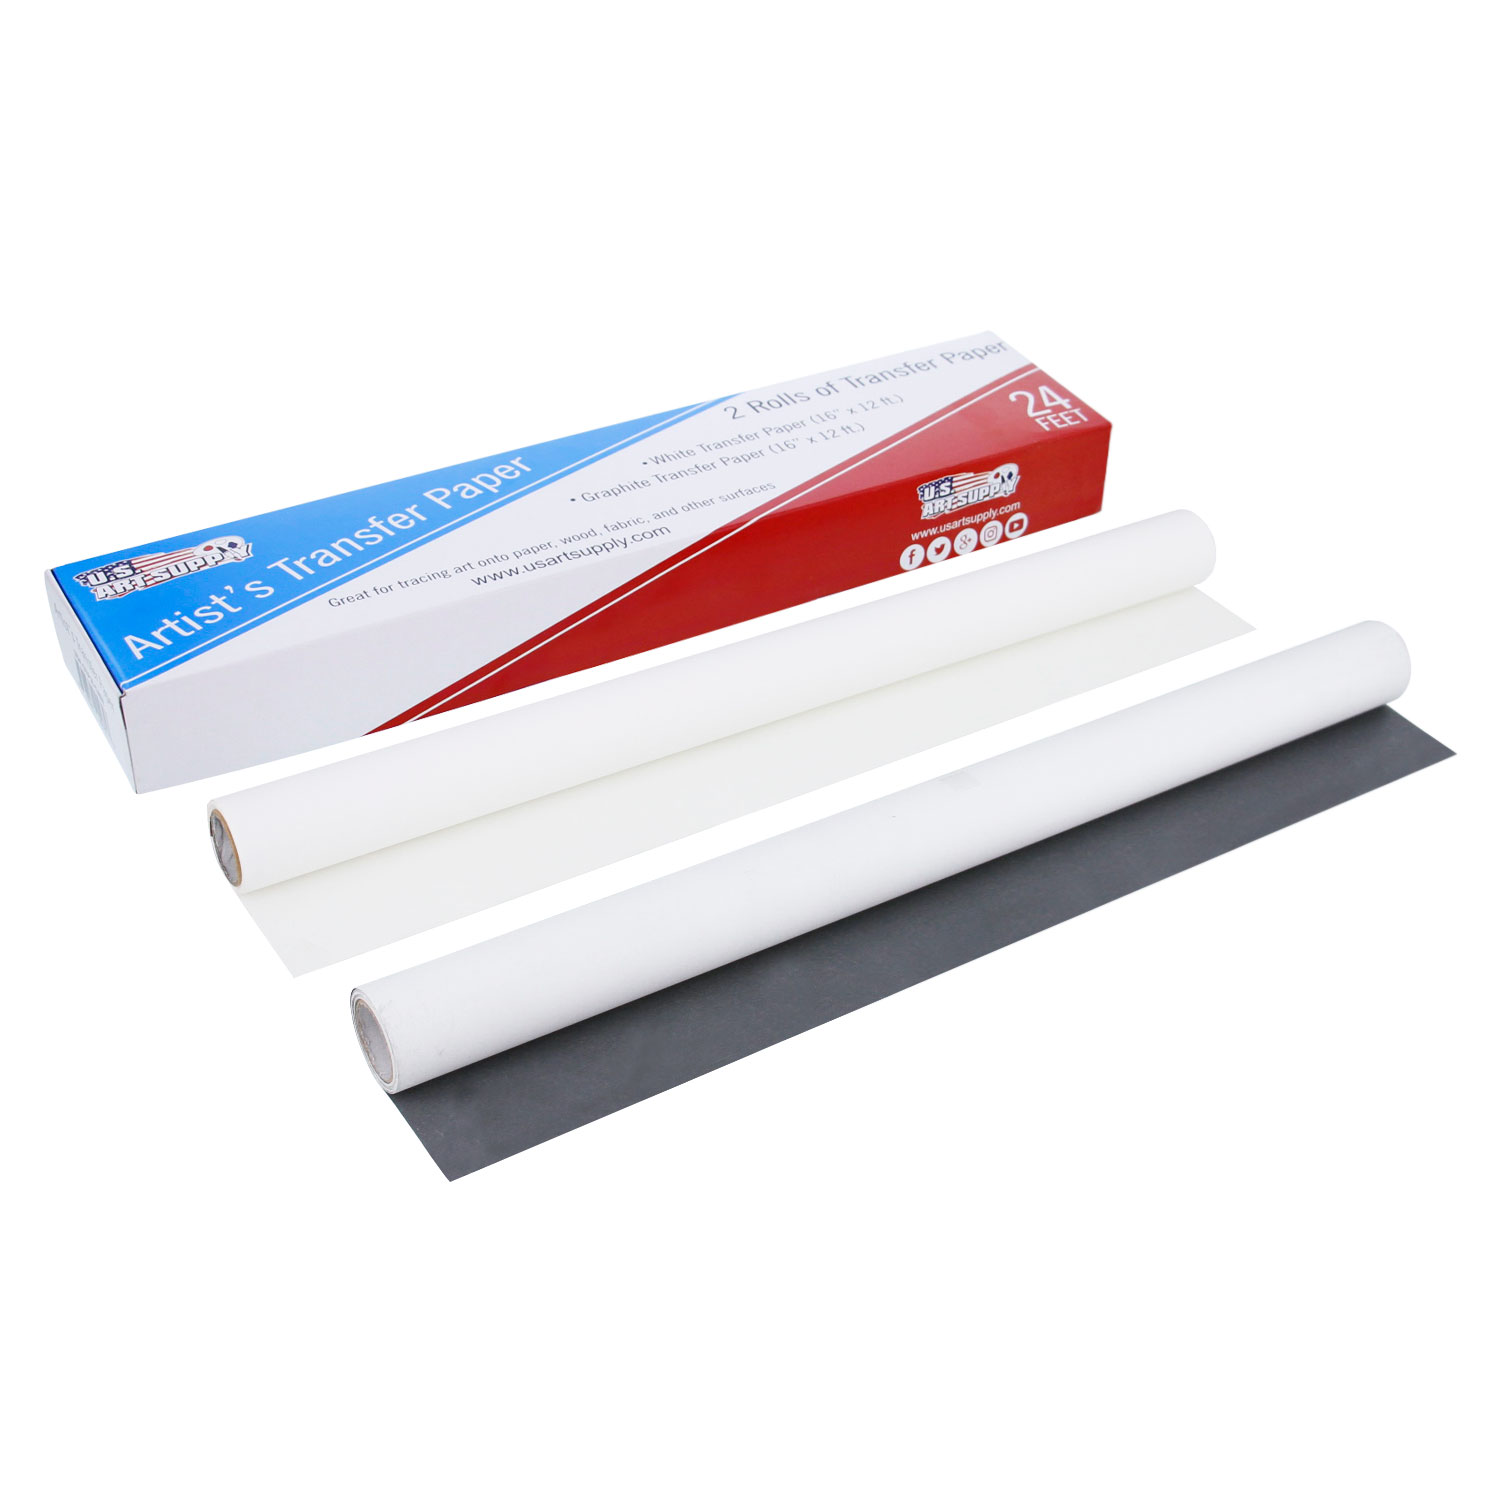 "U.S. Art Supply White & Graphite Transfer Paper Rolls, 16"" Wide x 12ft Long - Tracing Paper for all Art Surfaces"